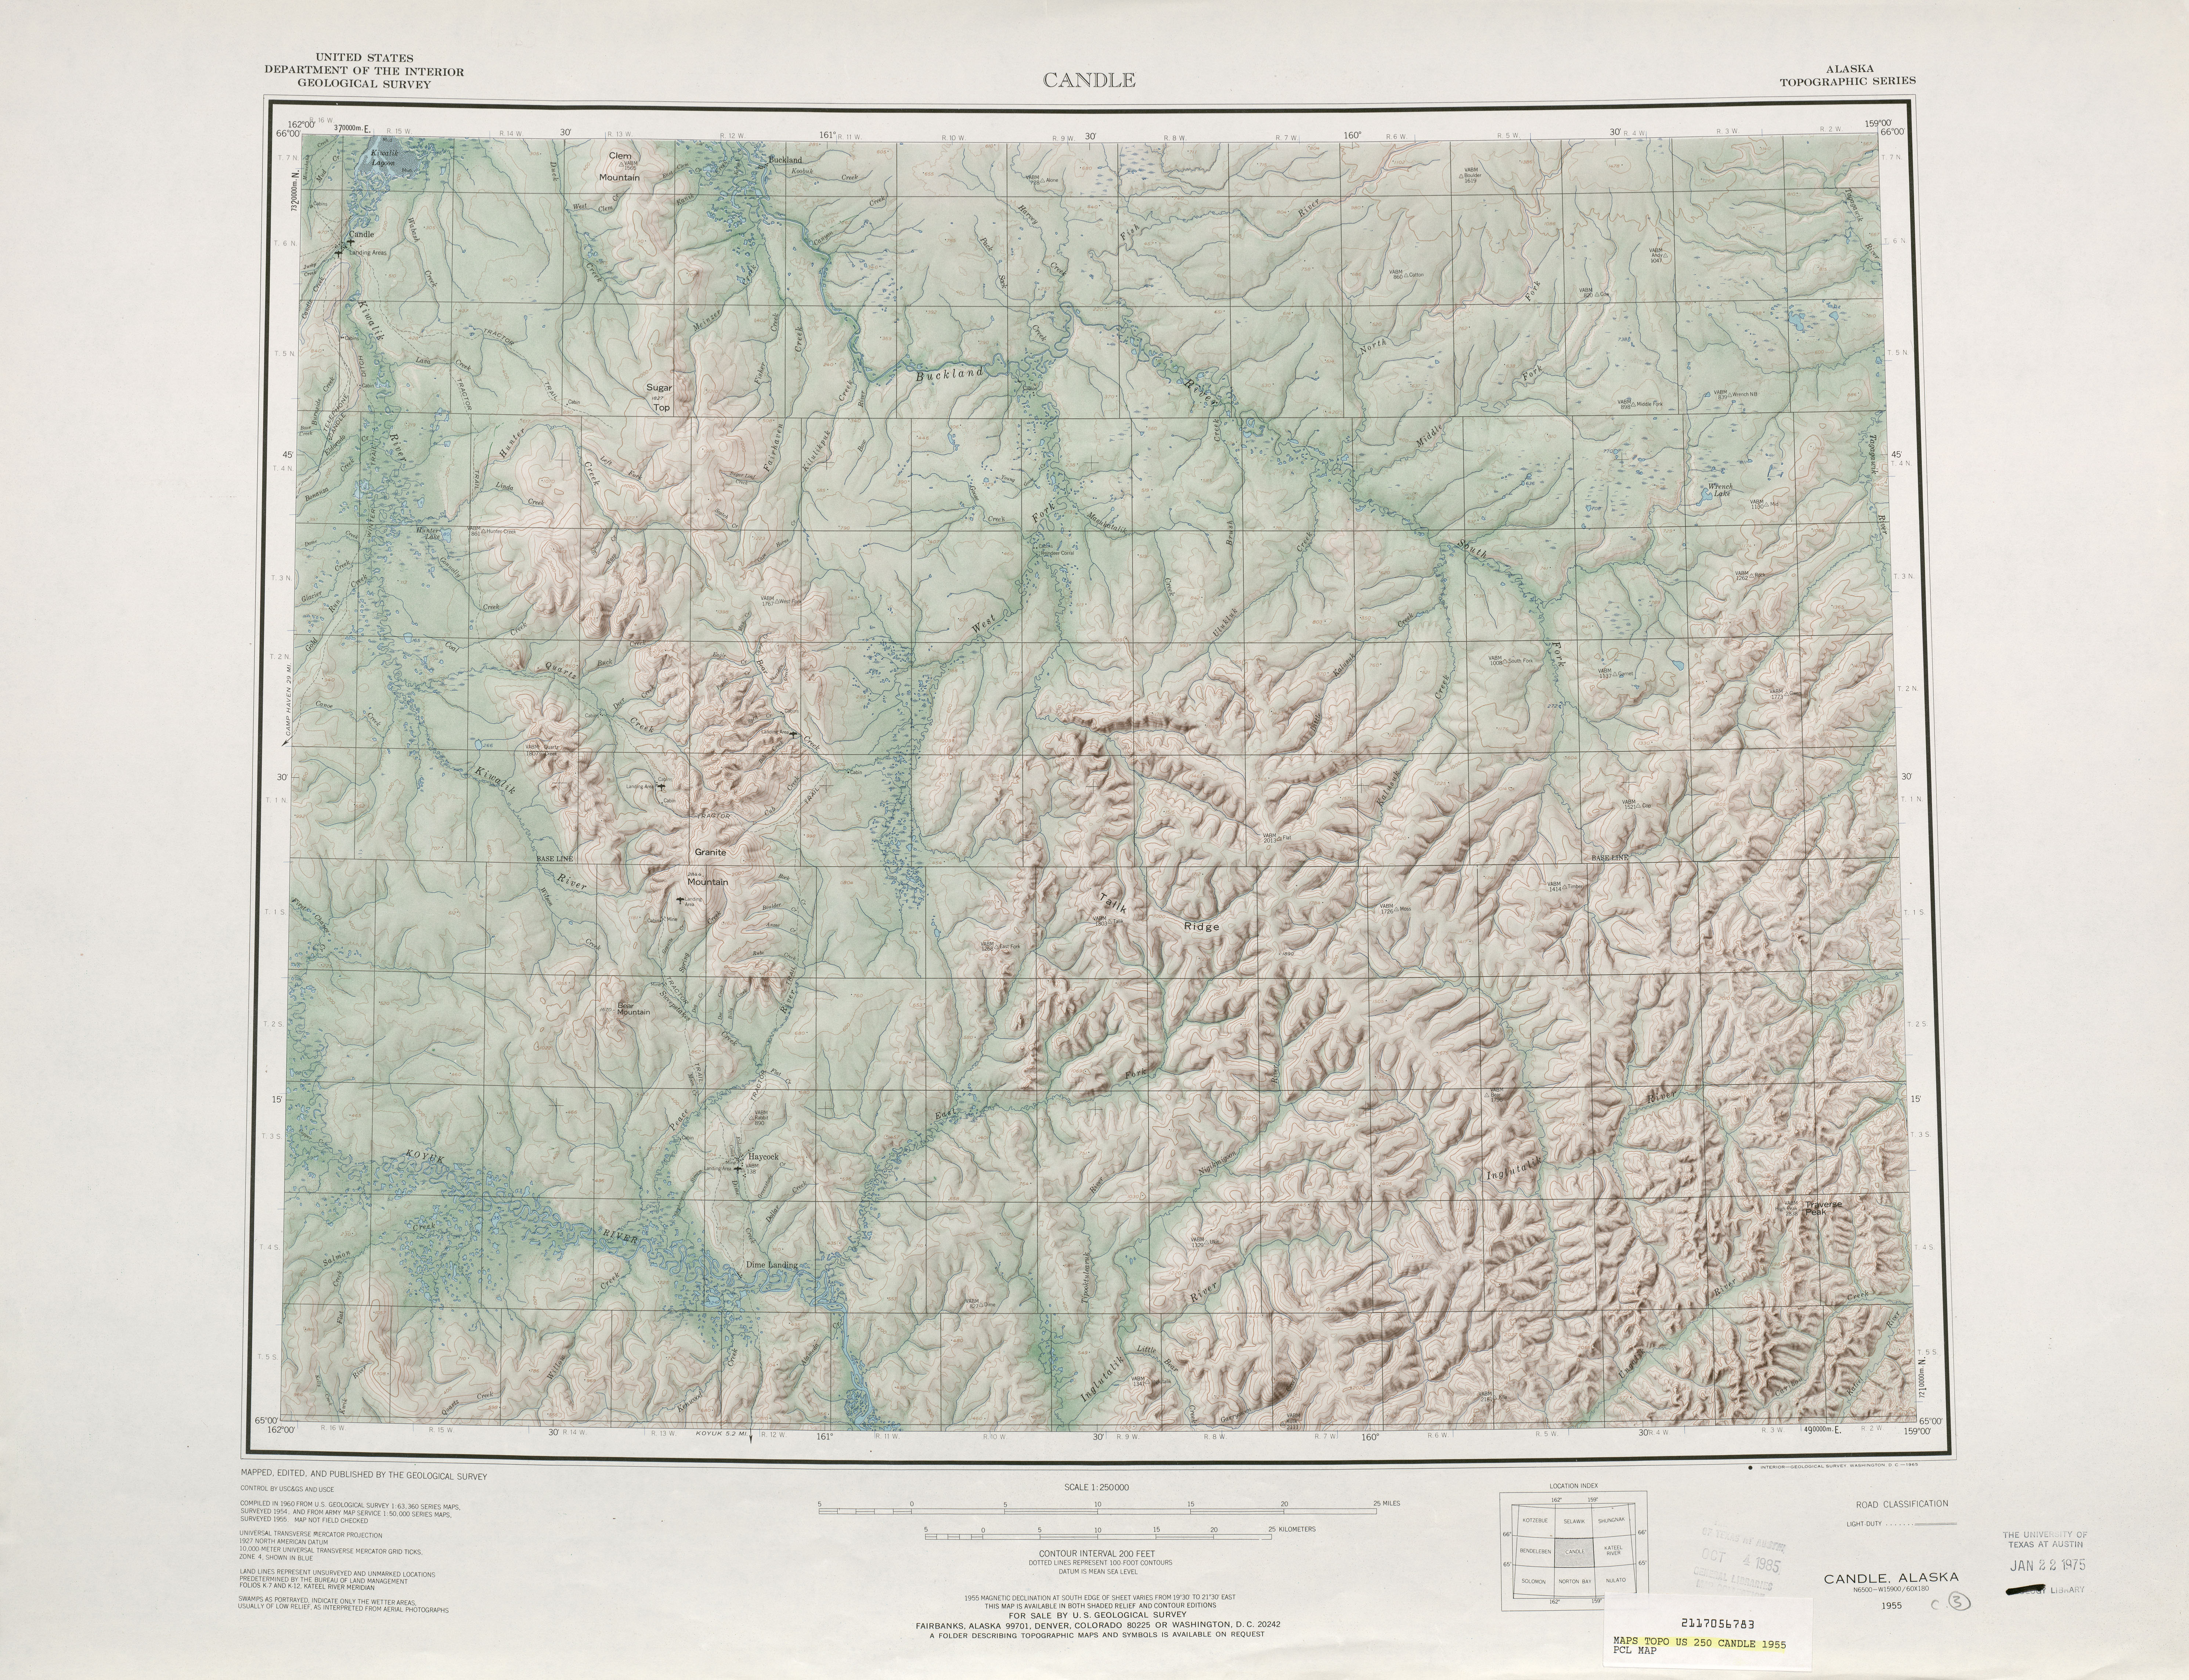 Candle Shaded Relief Map Sheet, United States 1955